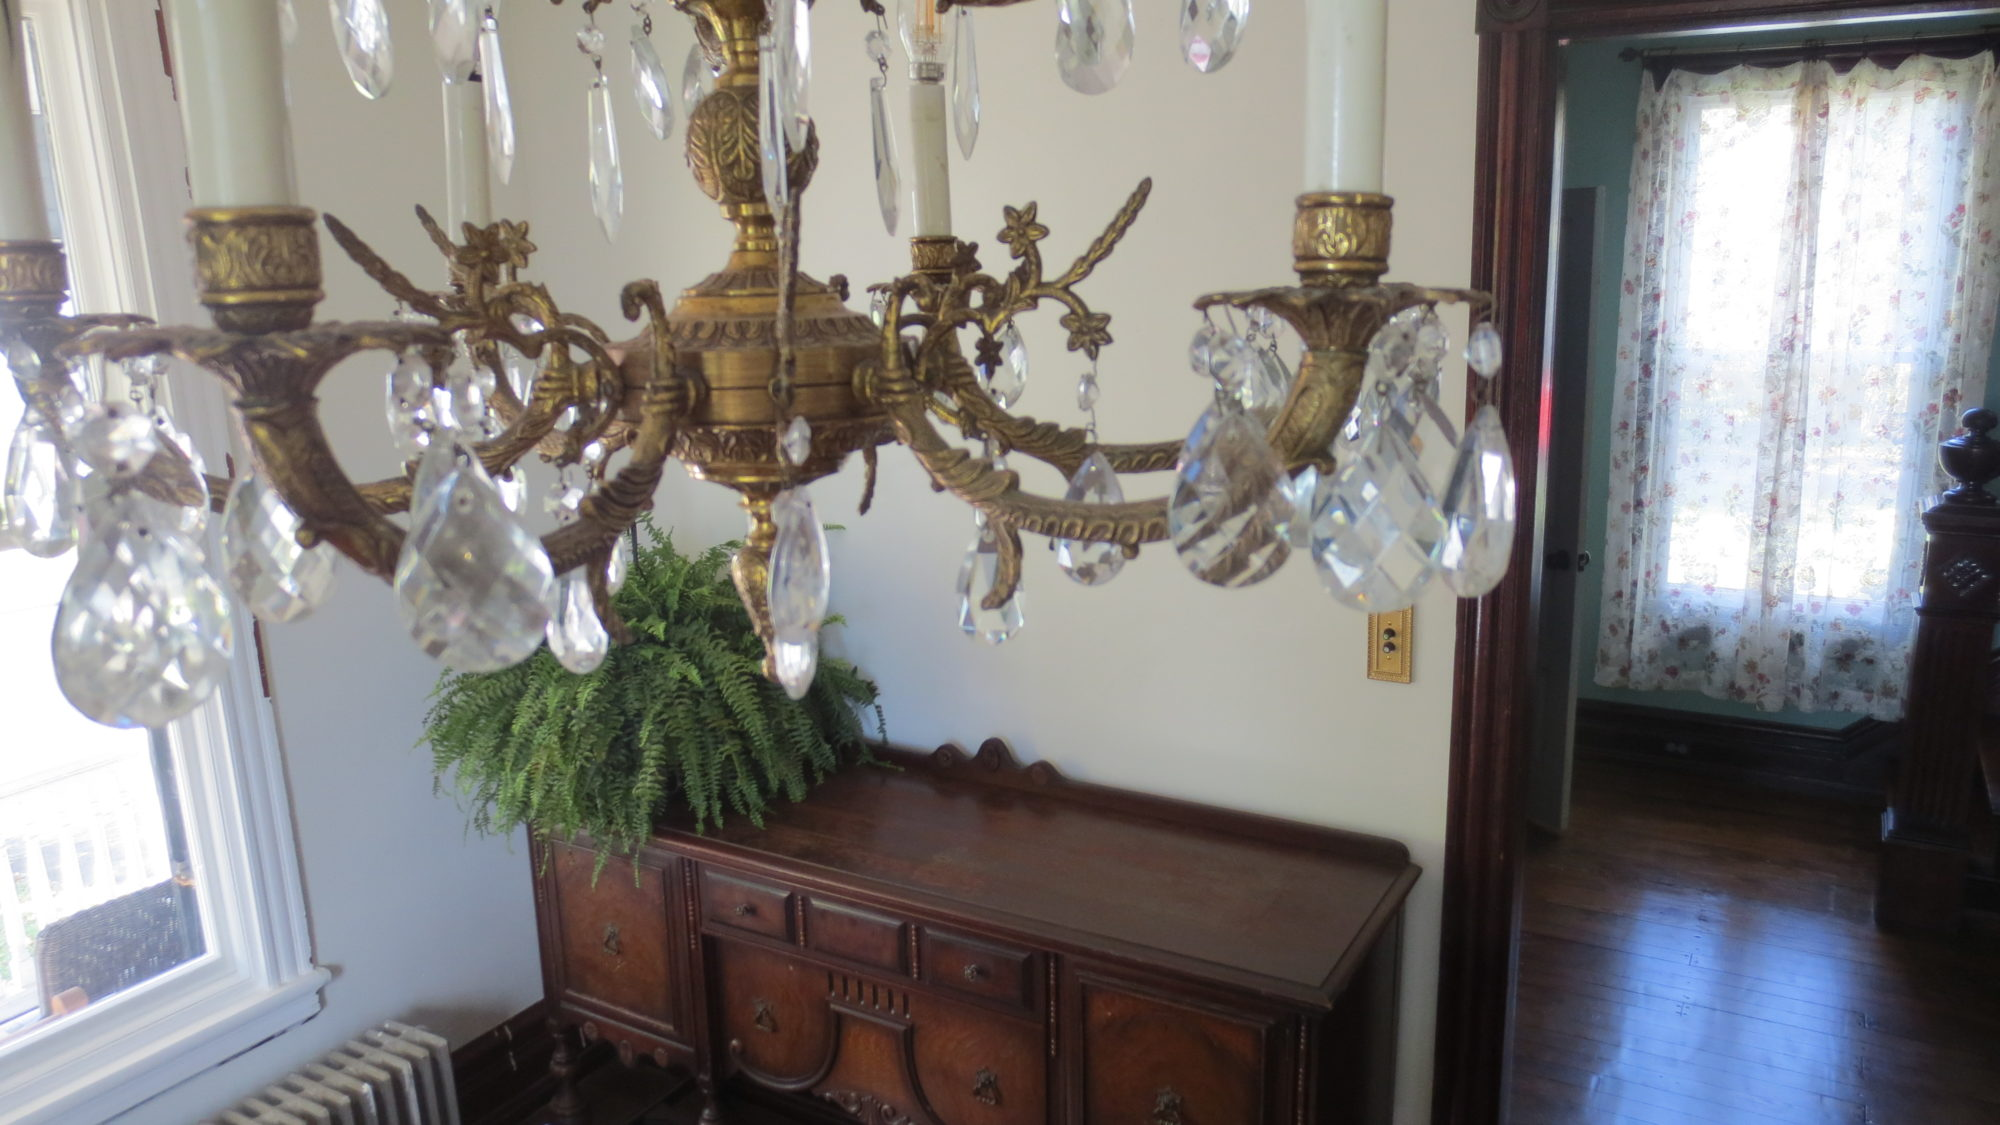 Antique victorian jacobean buffet table english tudor chandelier antique victorian jacobean buffet table english tudor chandelier dining room living in a fixer upper aloadofball Images